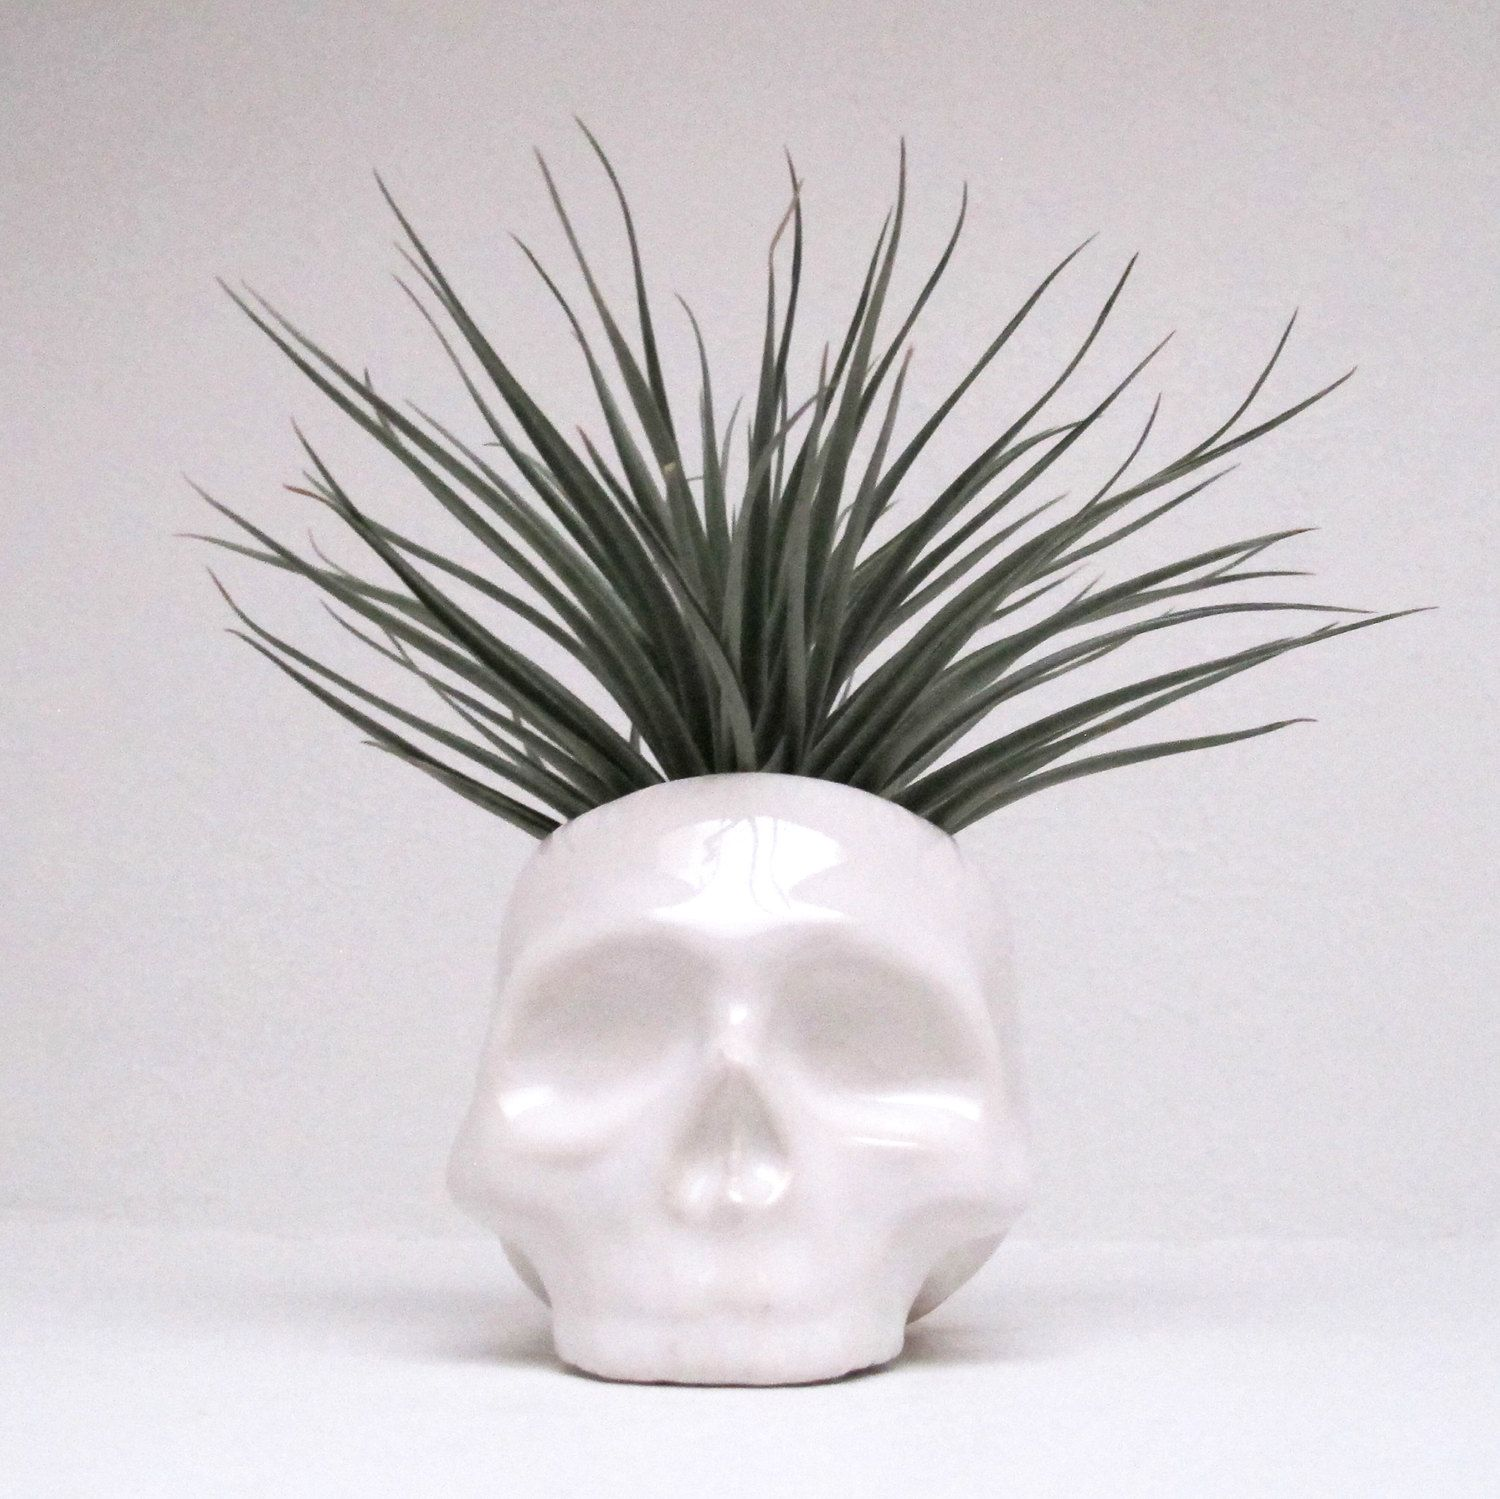 Ceramic Skull Planter perfect for cactus succulent or por mudpuppy